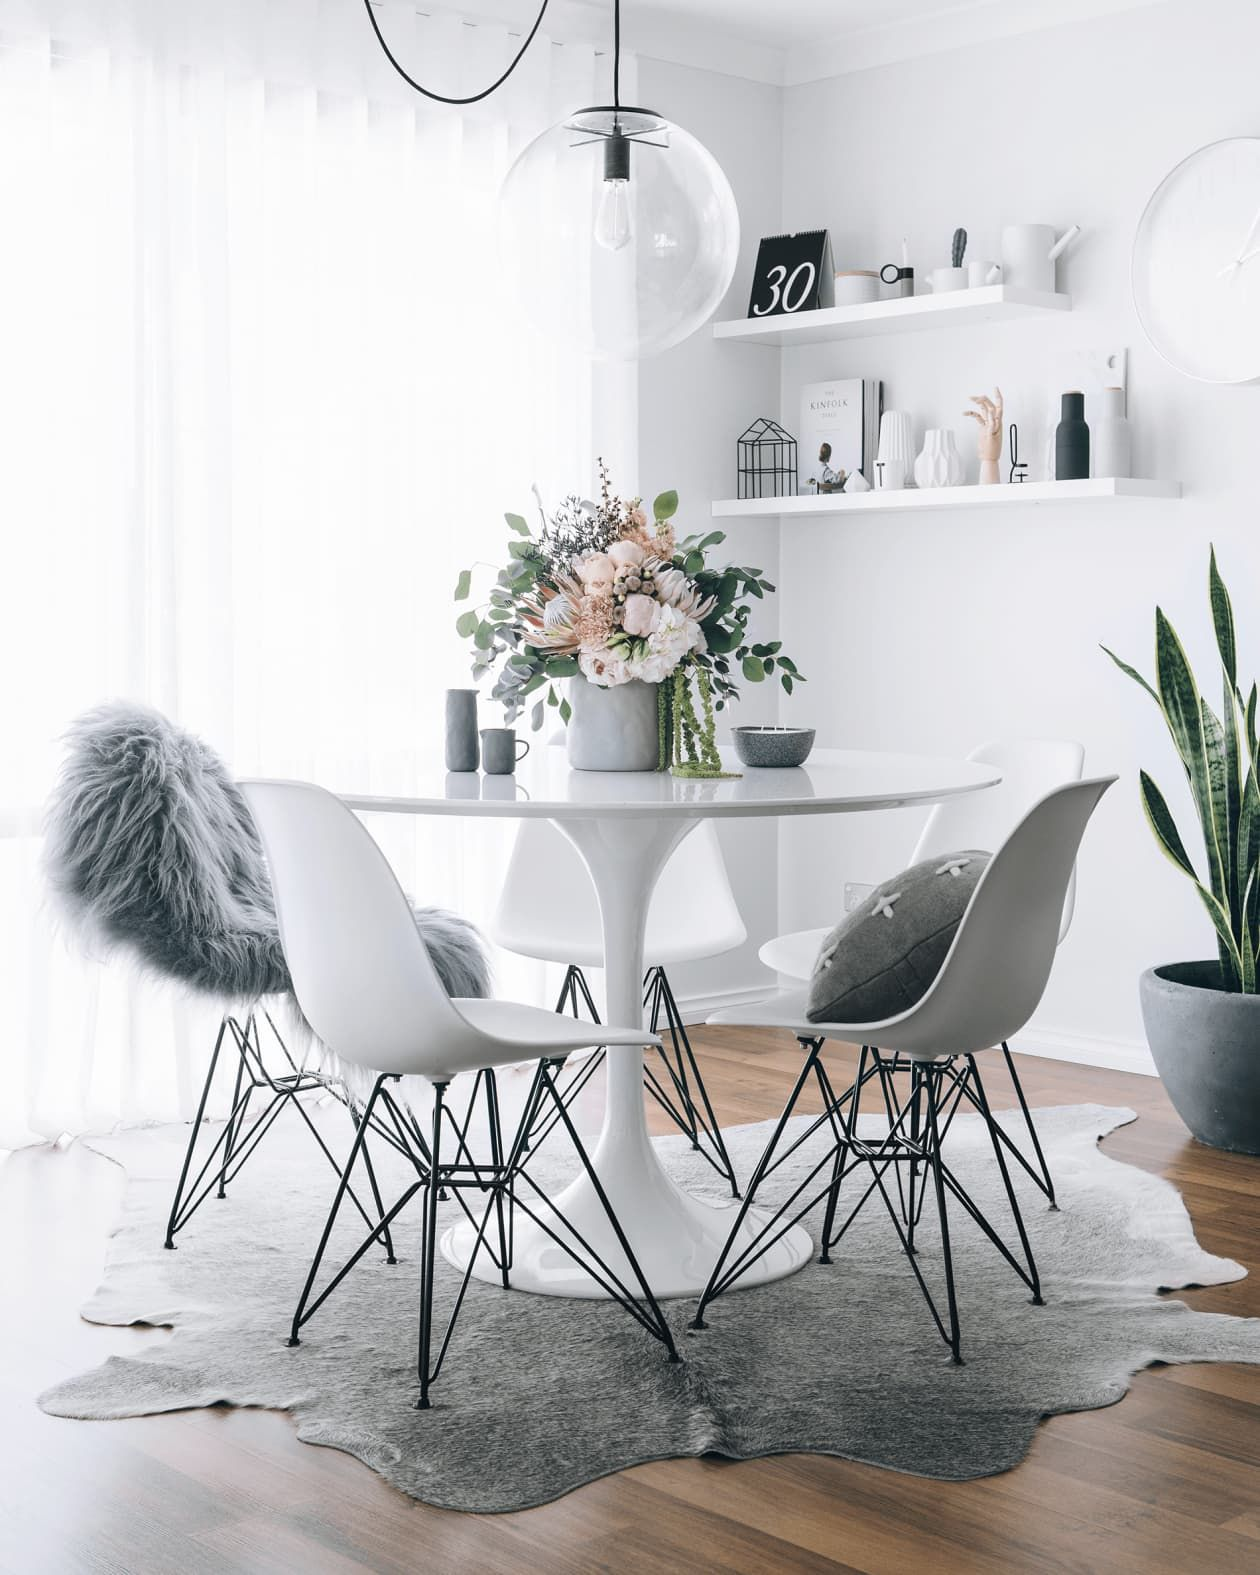 Cowhide Rugs 9 Rooms That Ll Turn Any Skeptic Into A Believer Dining Room Furniture Design Dining Room Small Elegant Dining Room